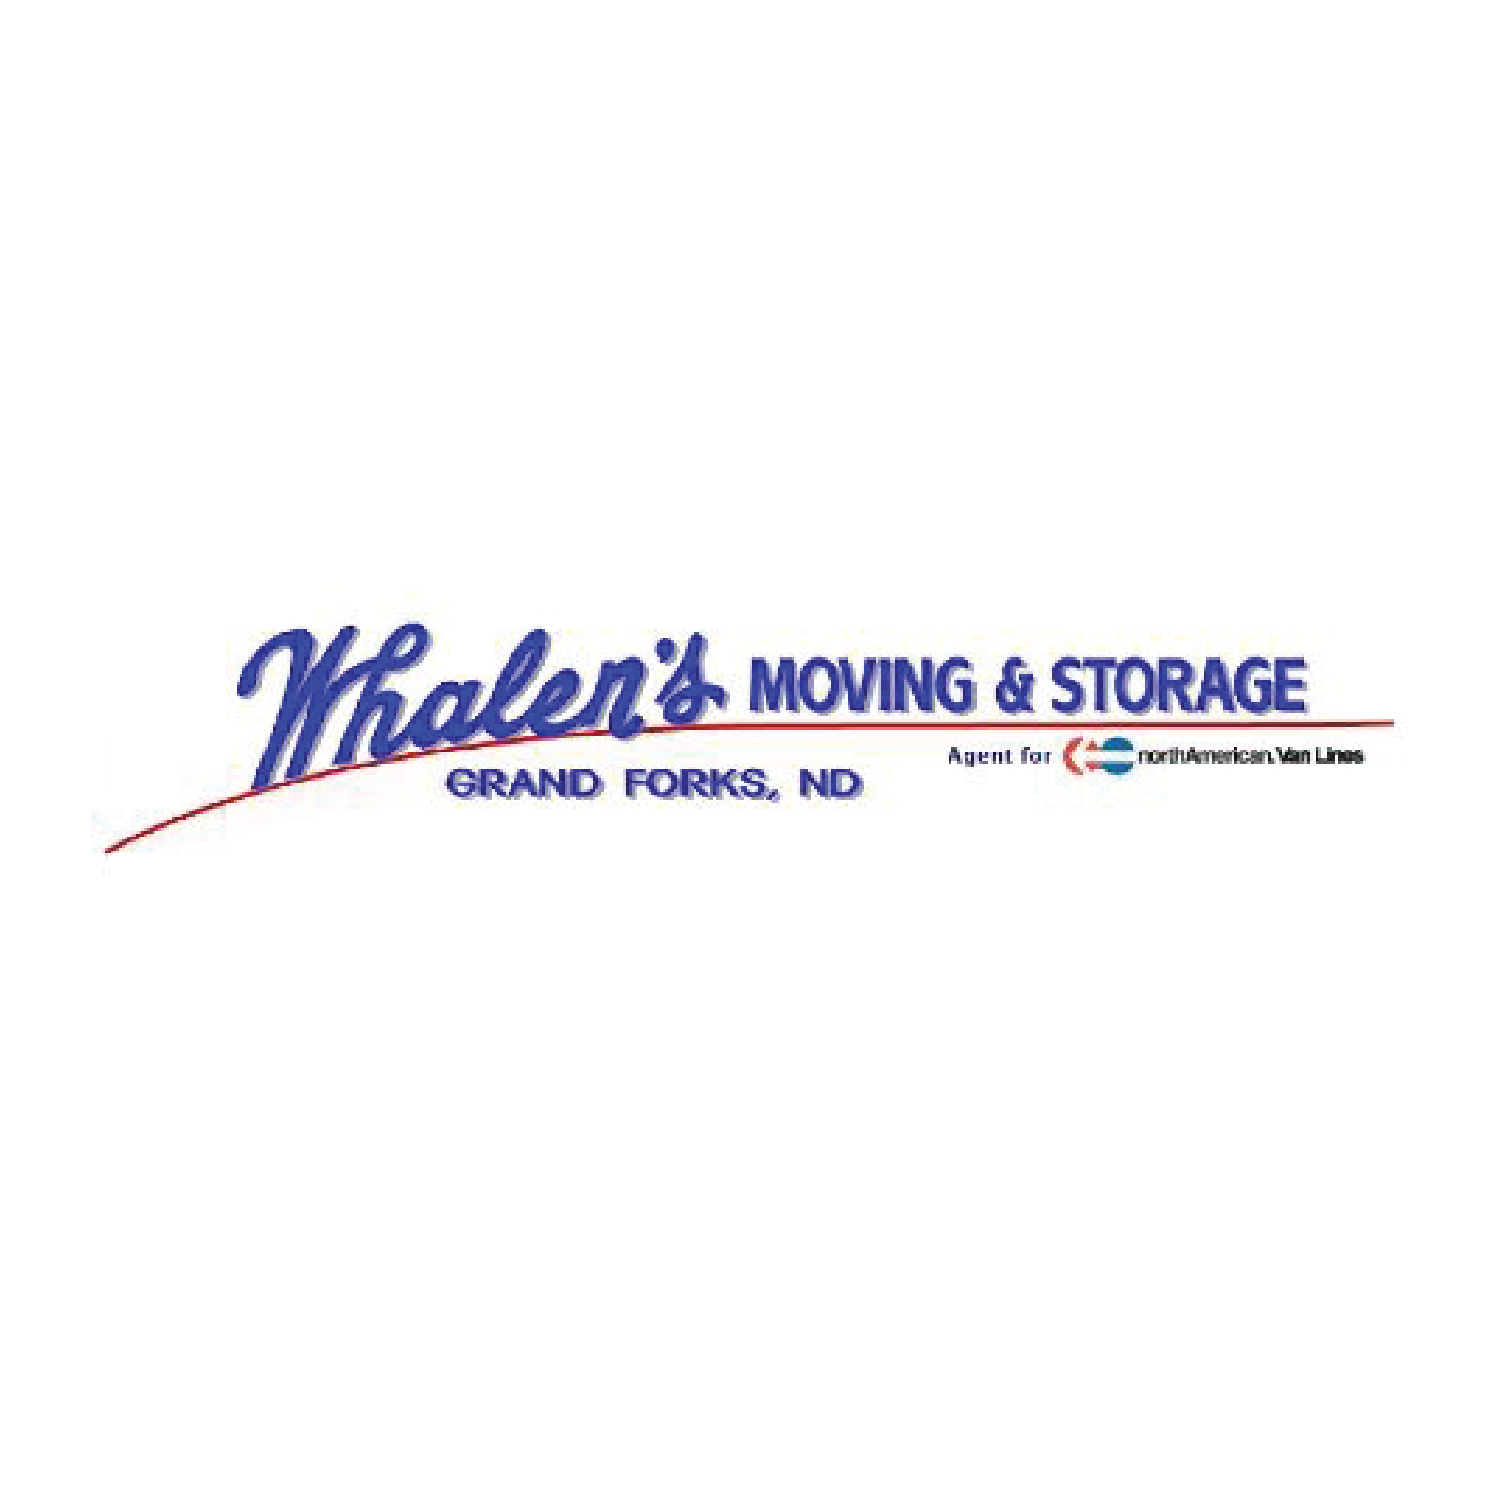 Whalen's Moving & Storage   900 1st Ave N Grand Forks, ND 701-775-5557